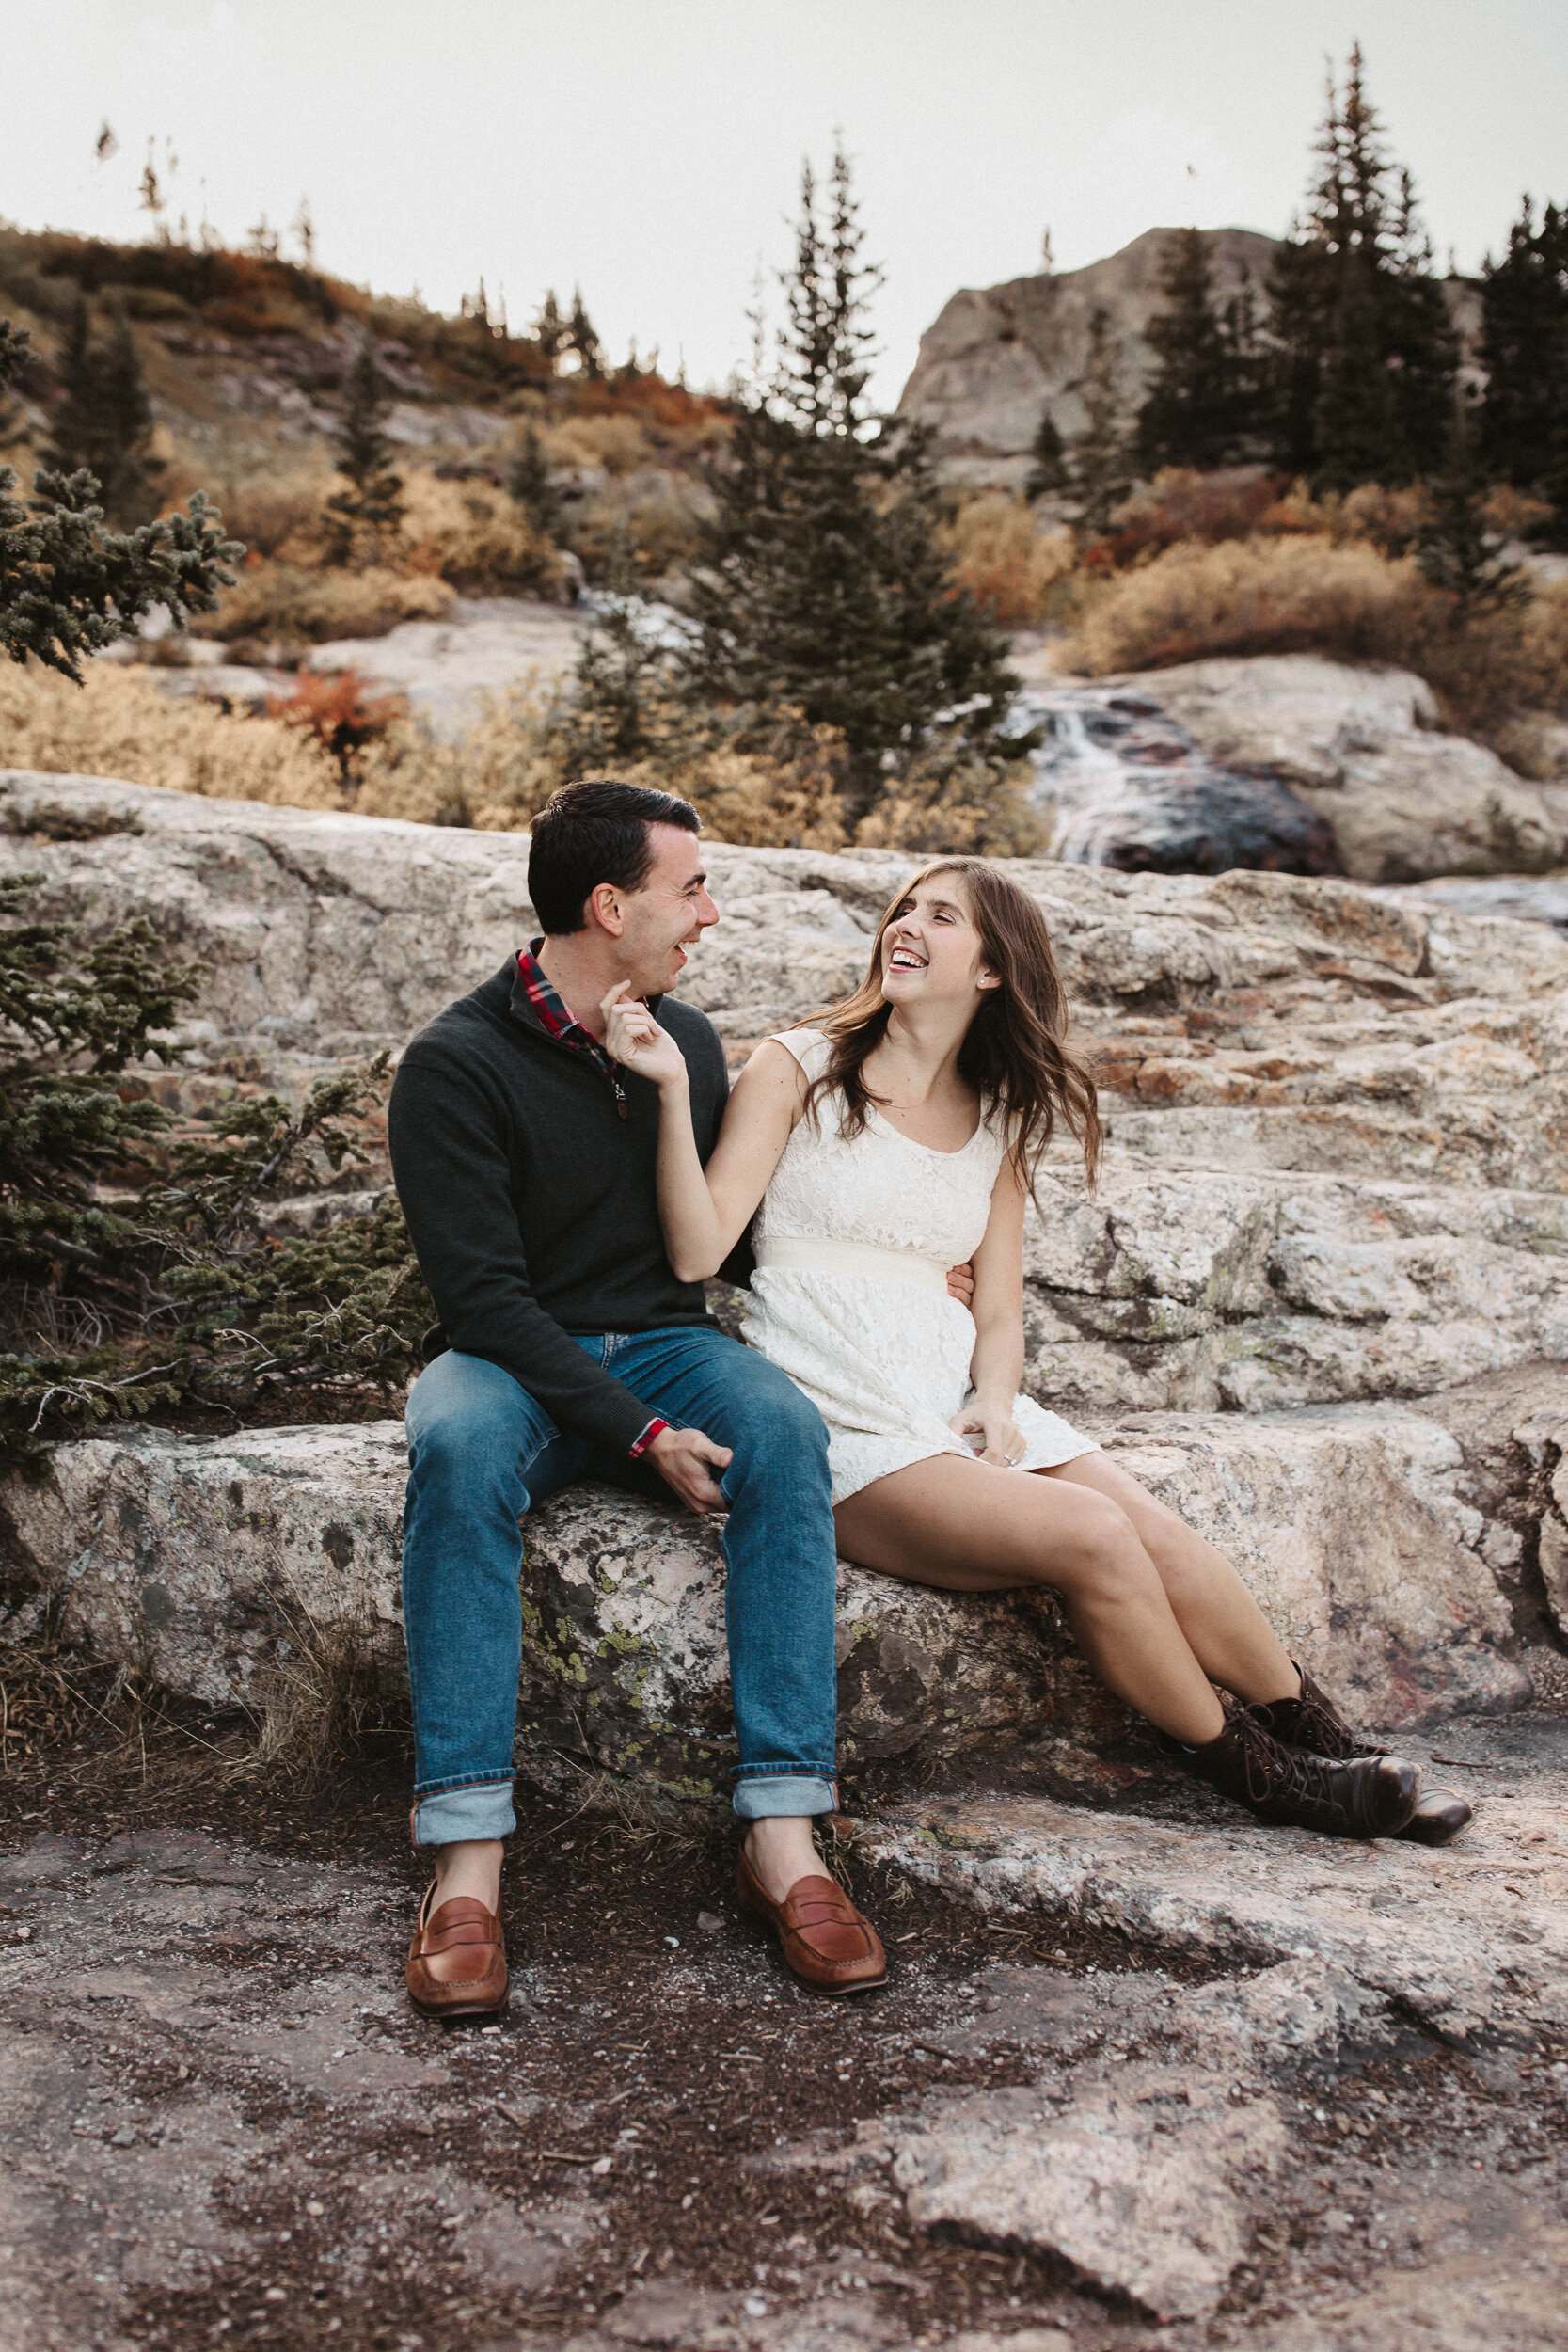 Claire_&_Matthew_Engagment_Breckenridge_Colorado_Fall_0103.jpg